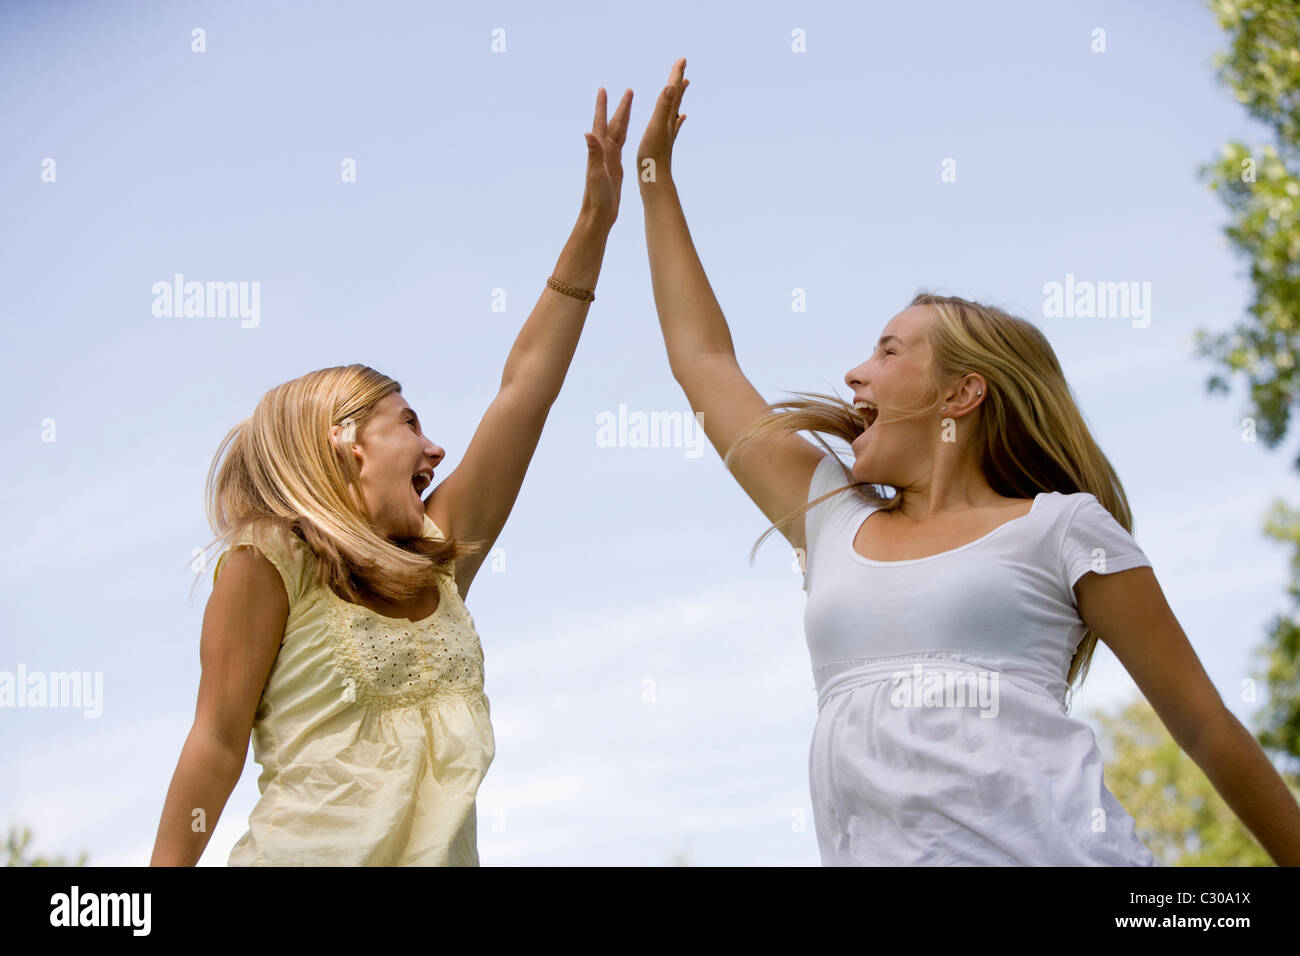 Teen girls celebrate winning by jumping in air and doing a high-five Stock Photo